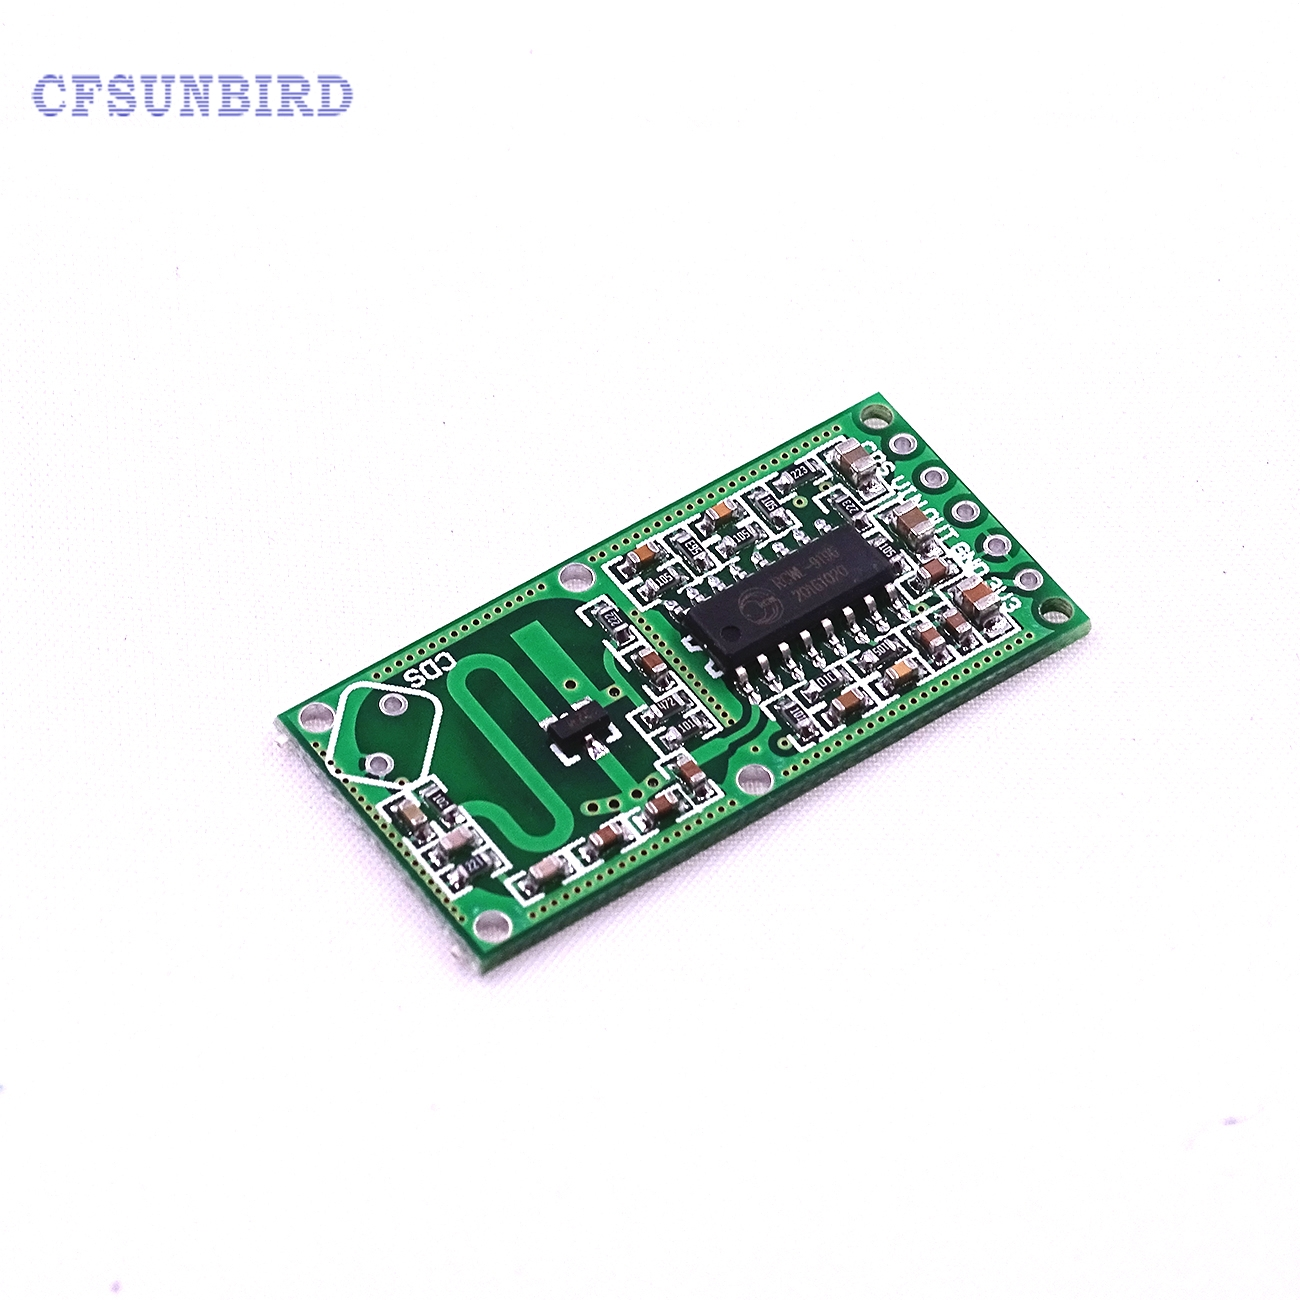 RCWL-0516 microwave radar sensor module Human body induction switch module Intelligent sensor the club of angels